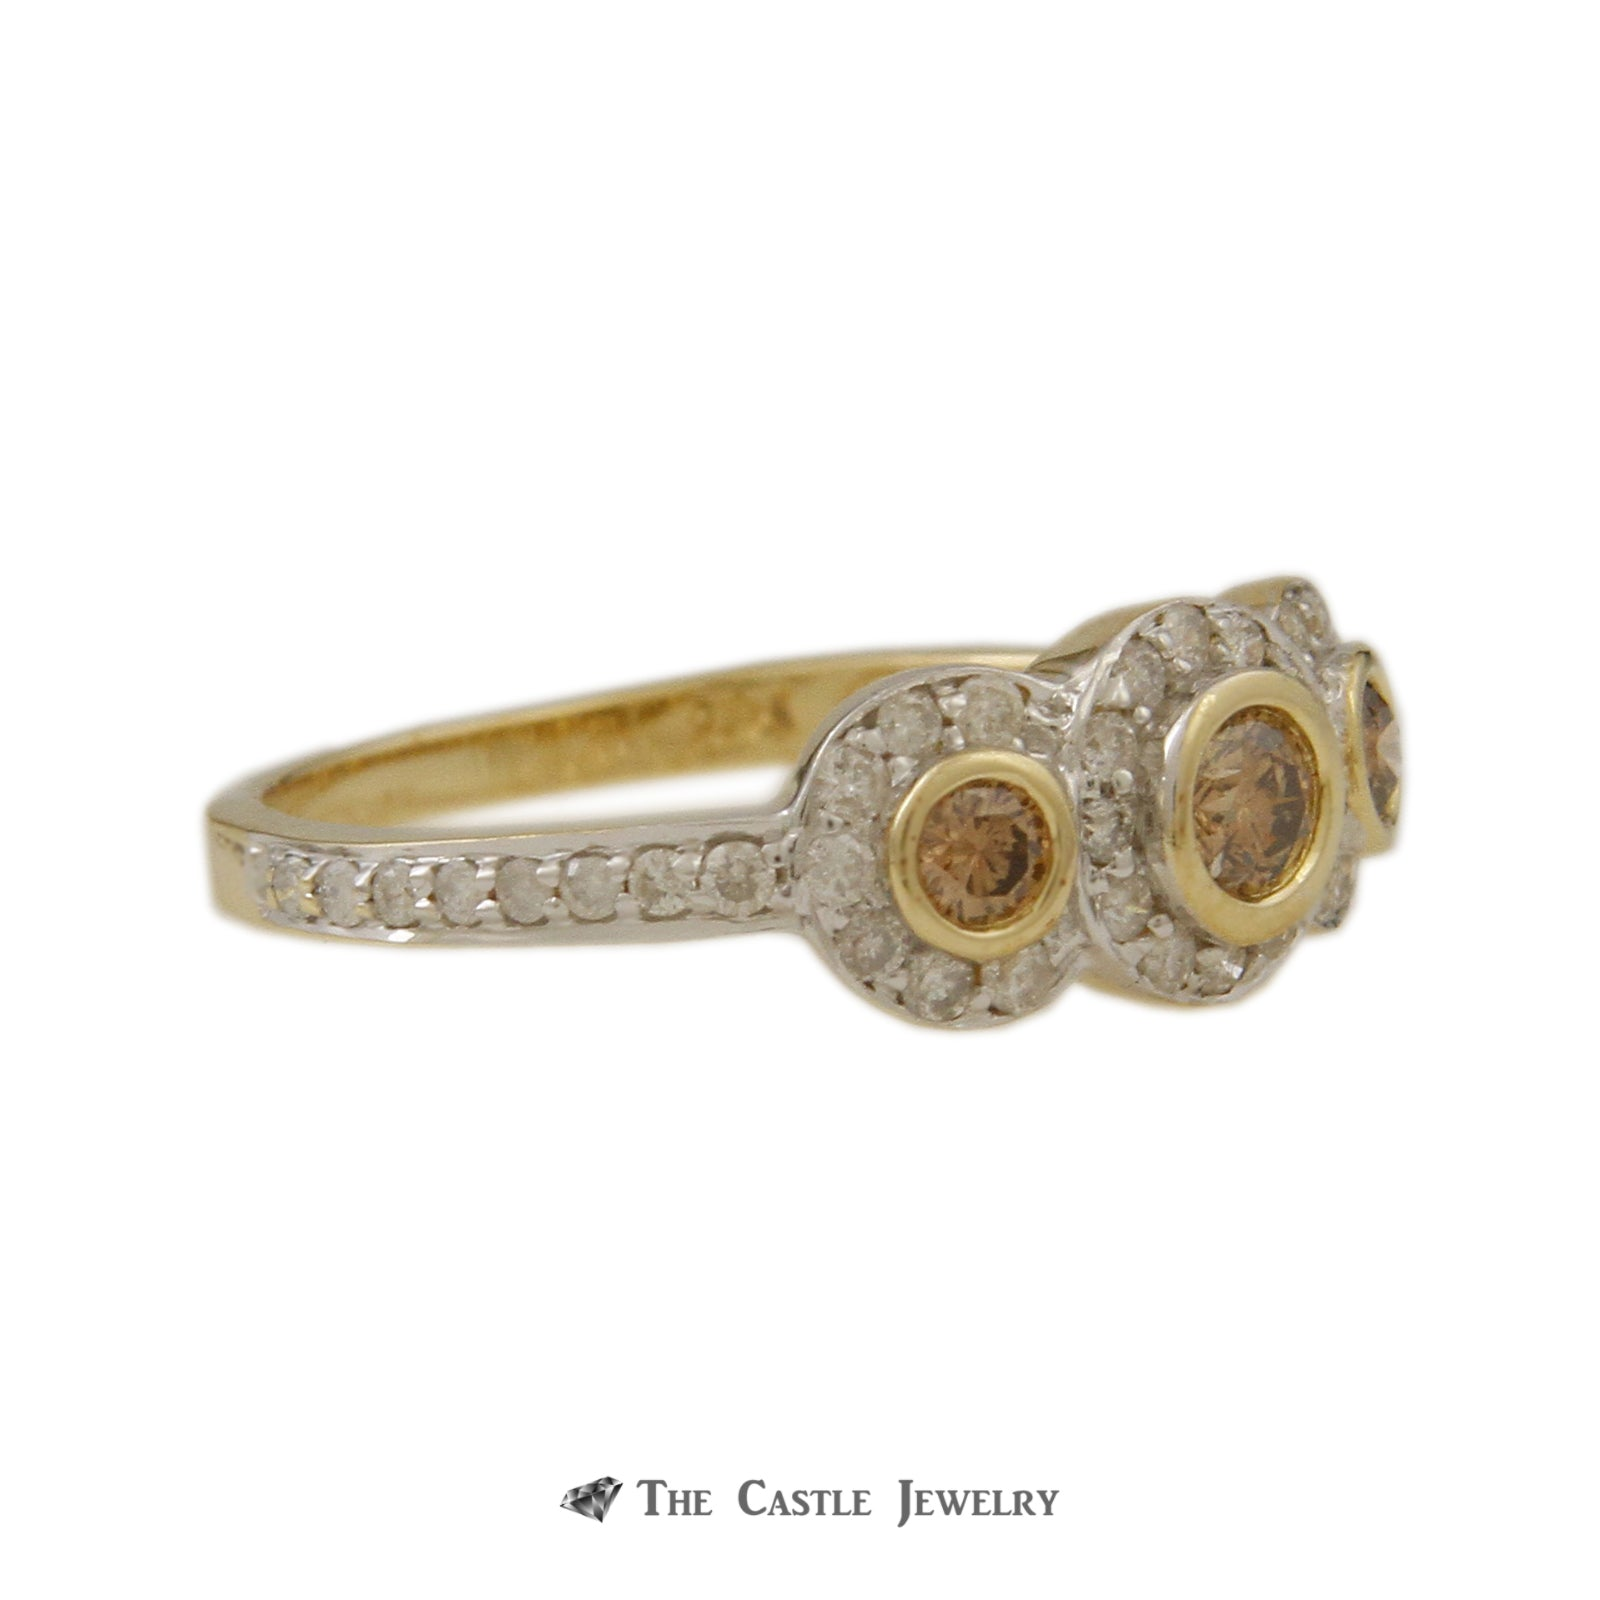 Bezel Set Champagne Diamond 3 Stone Ring with White Diamond Halos & Mounting in Yellow Gold-2